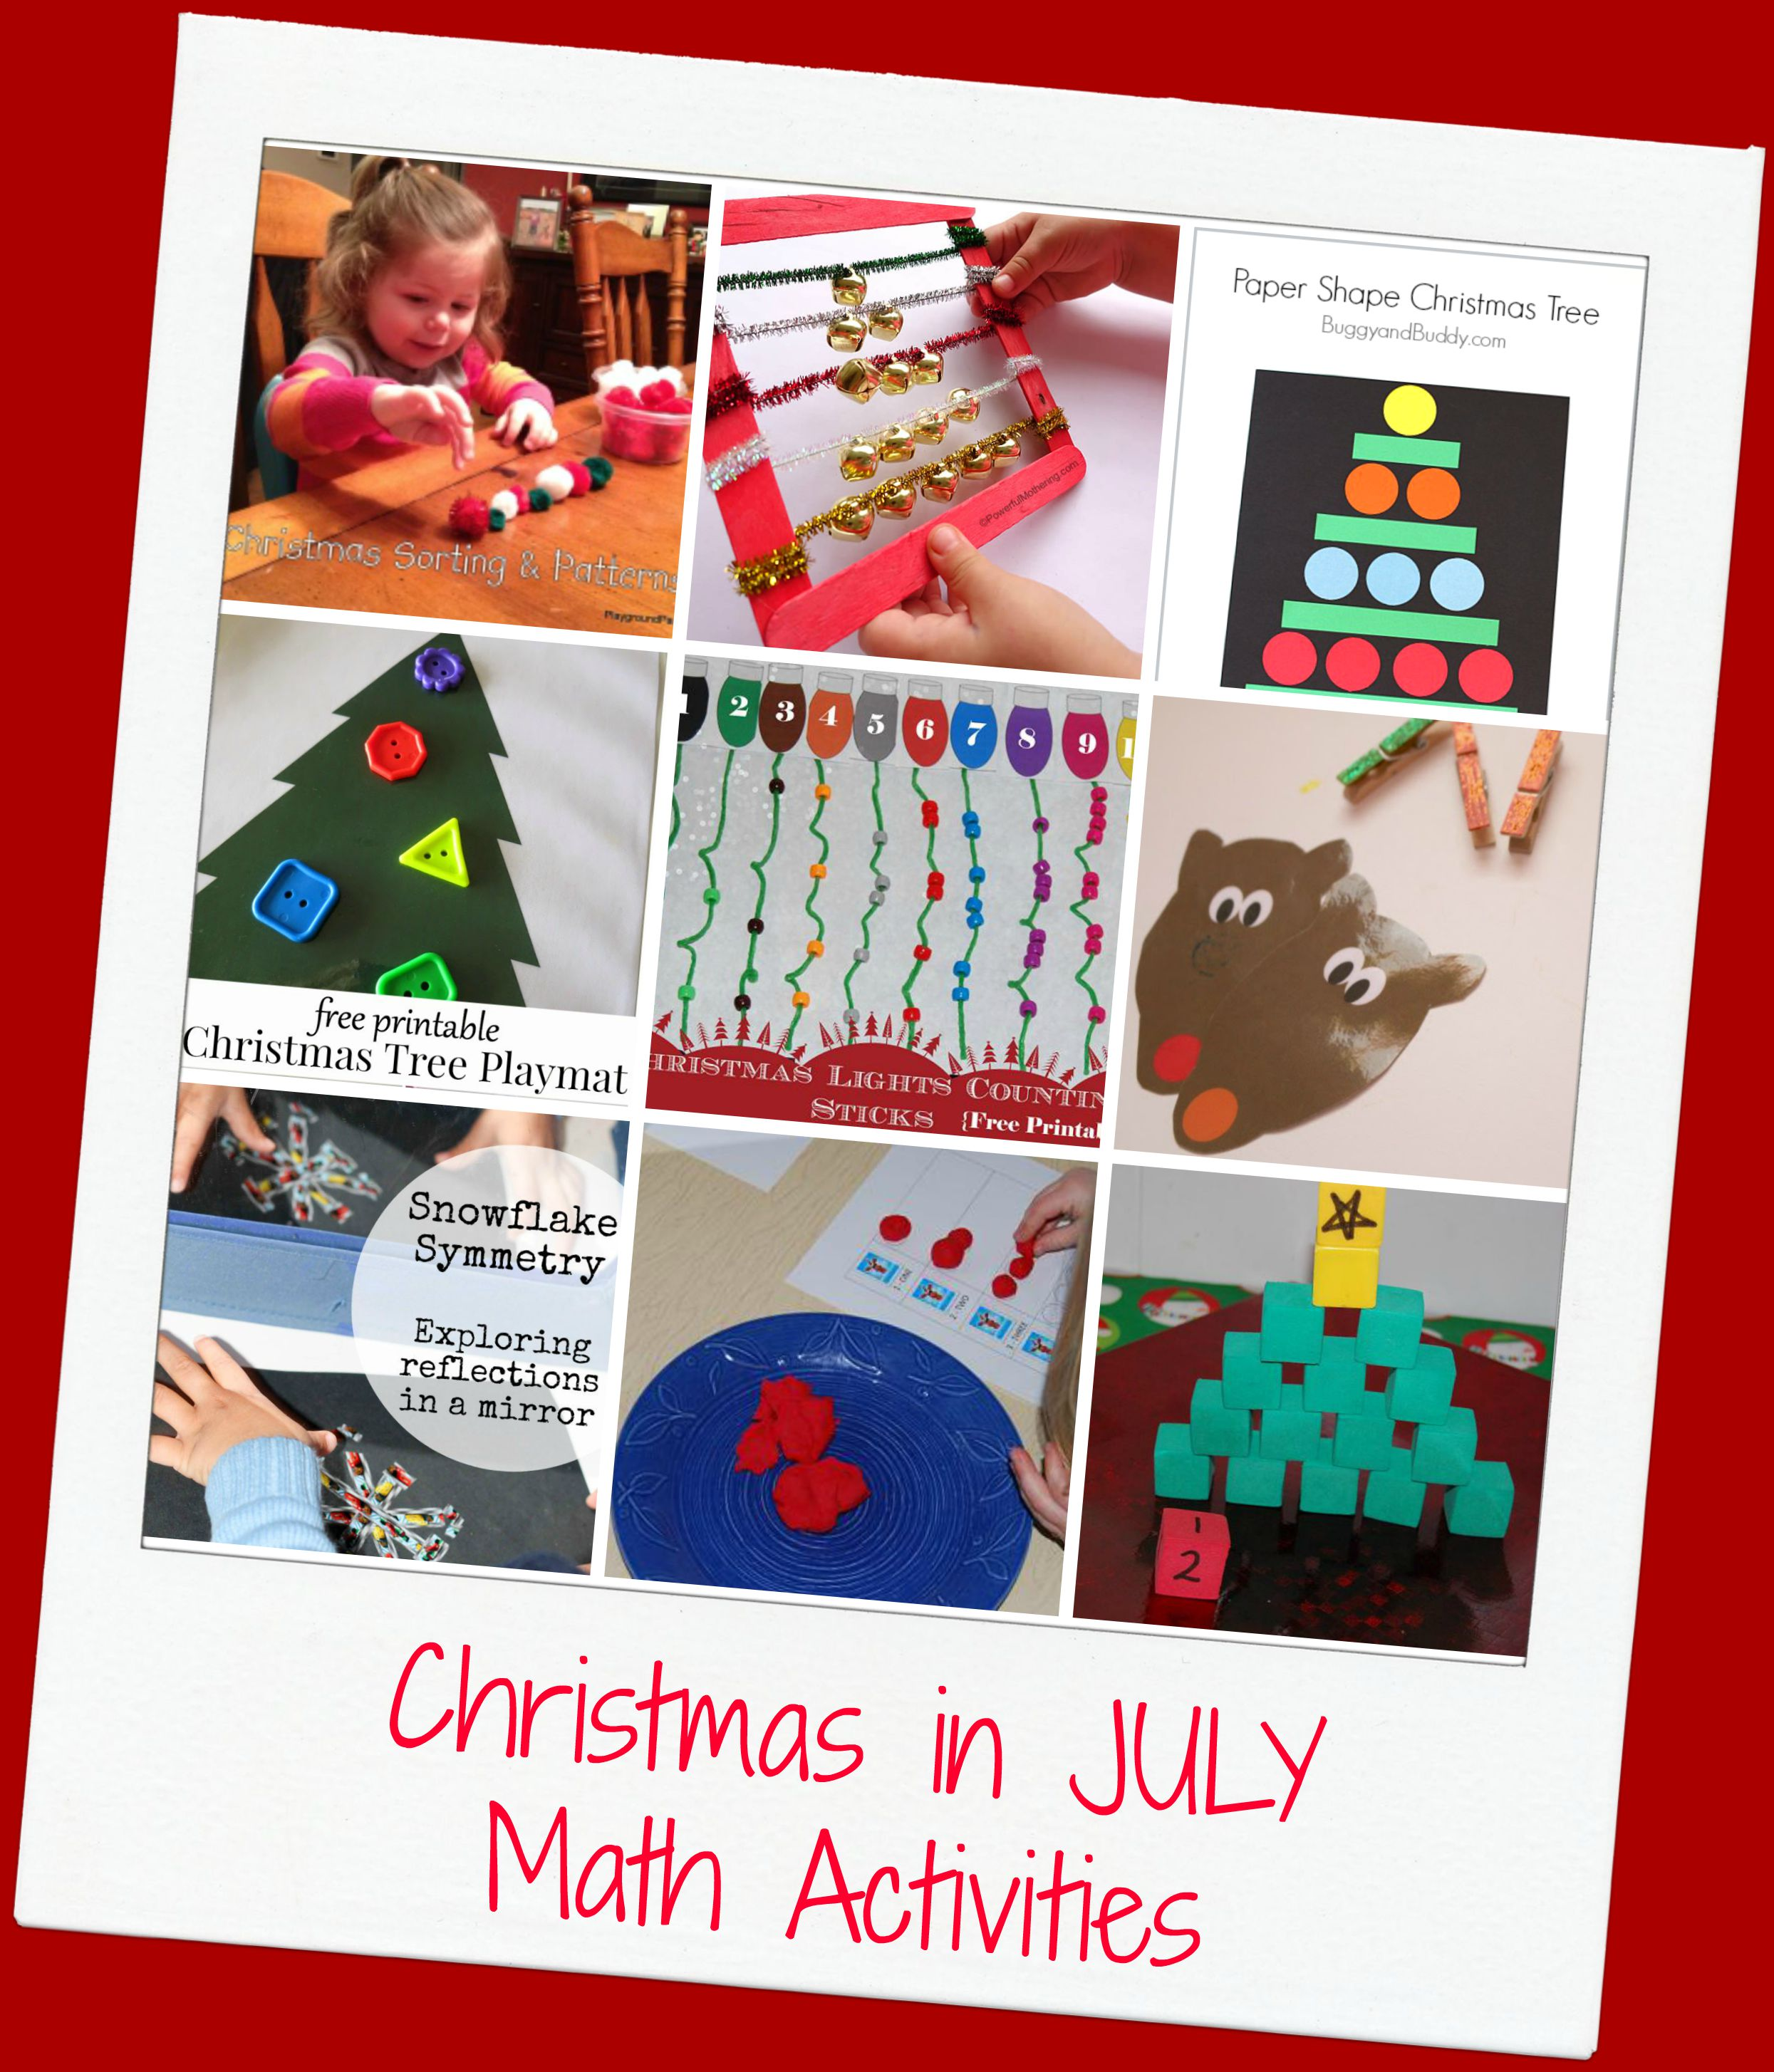 Christmas In July Math Activities For Preschool The Preschool Toolbox Blog